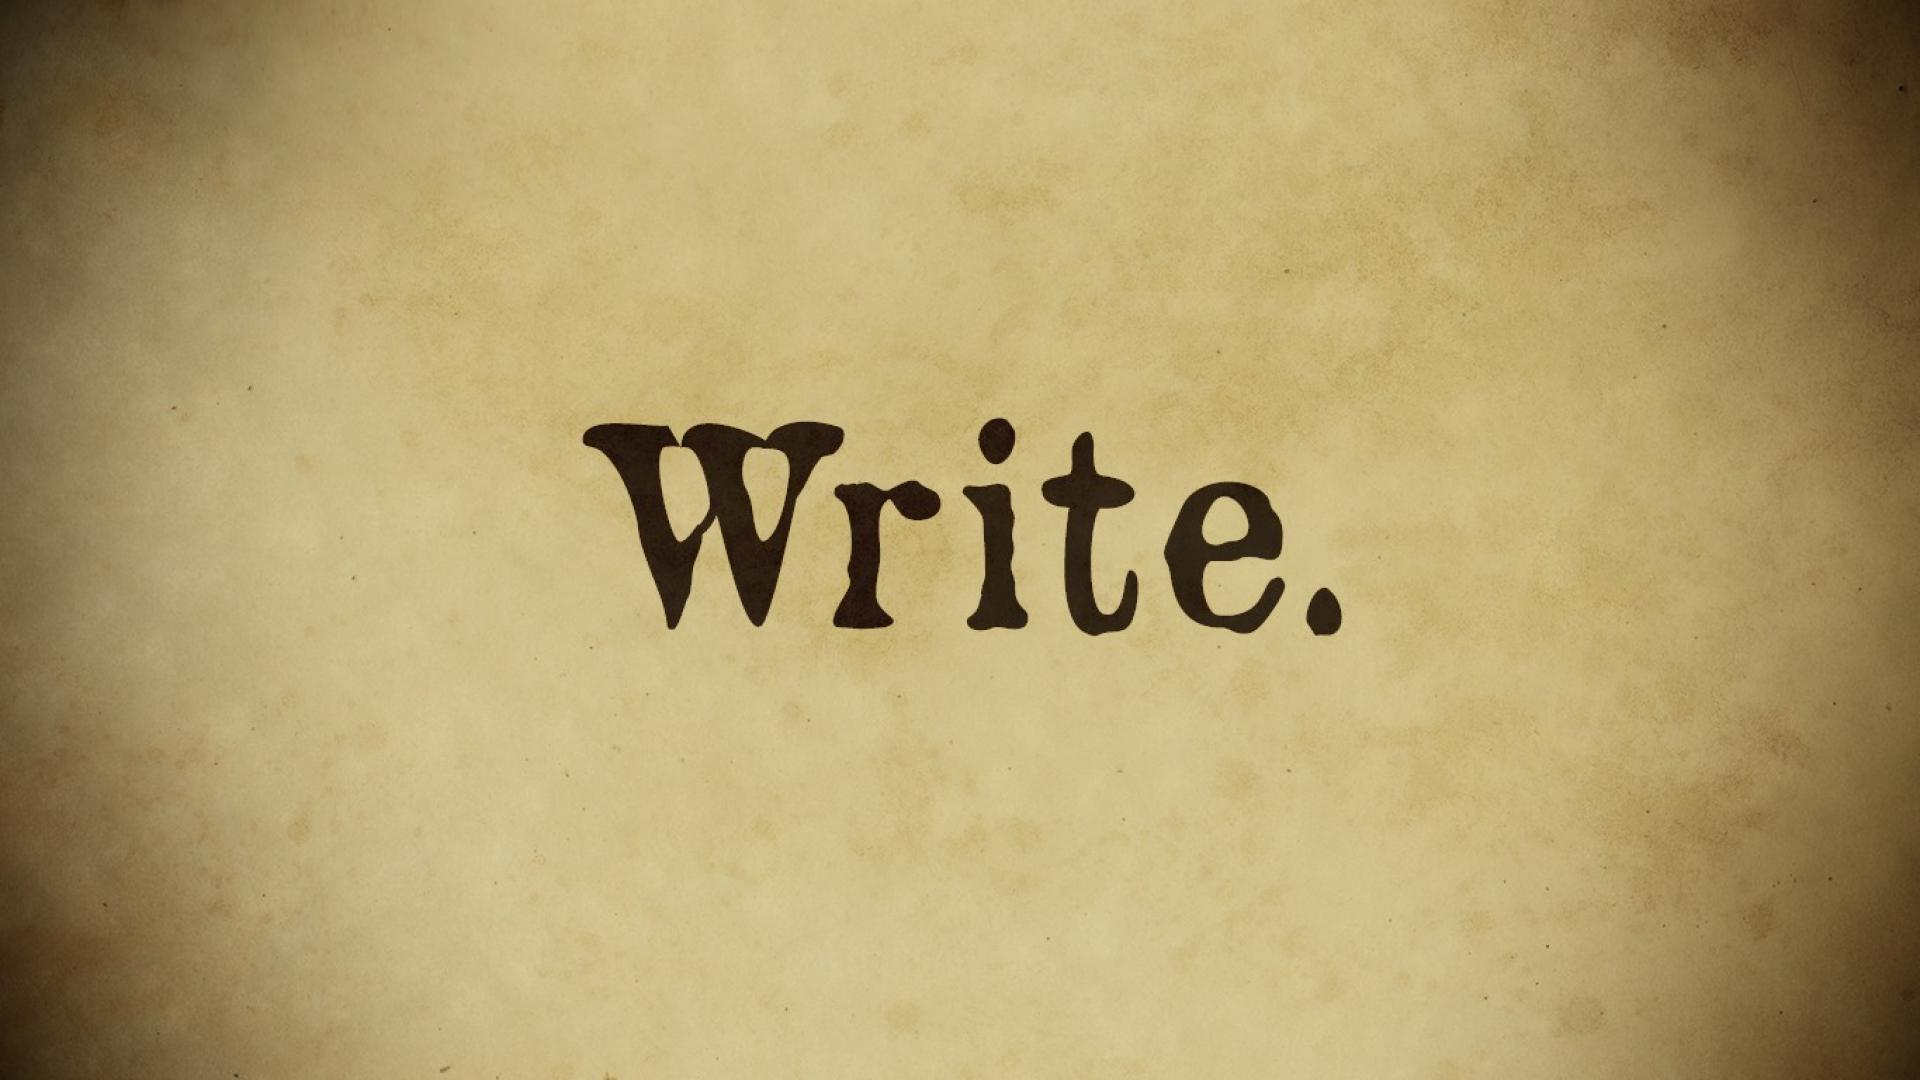 Writers wallpaper